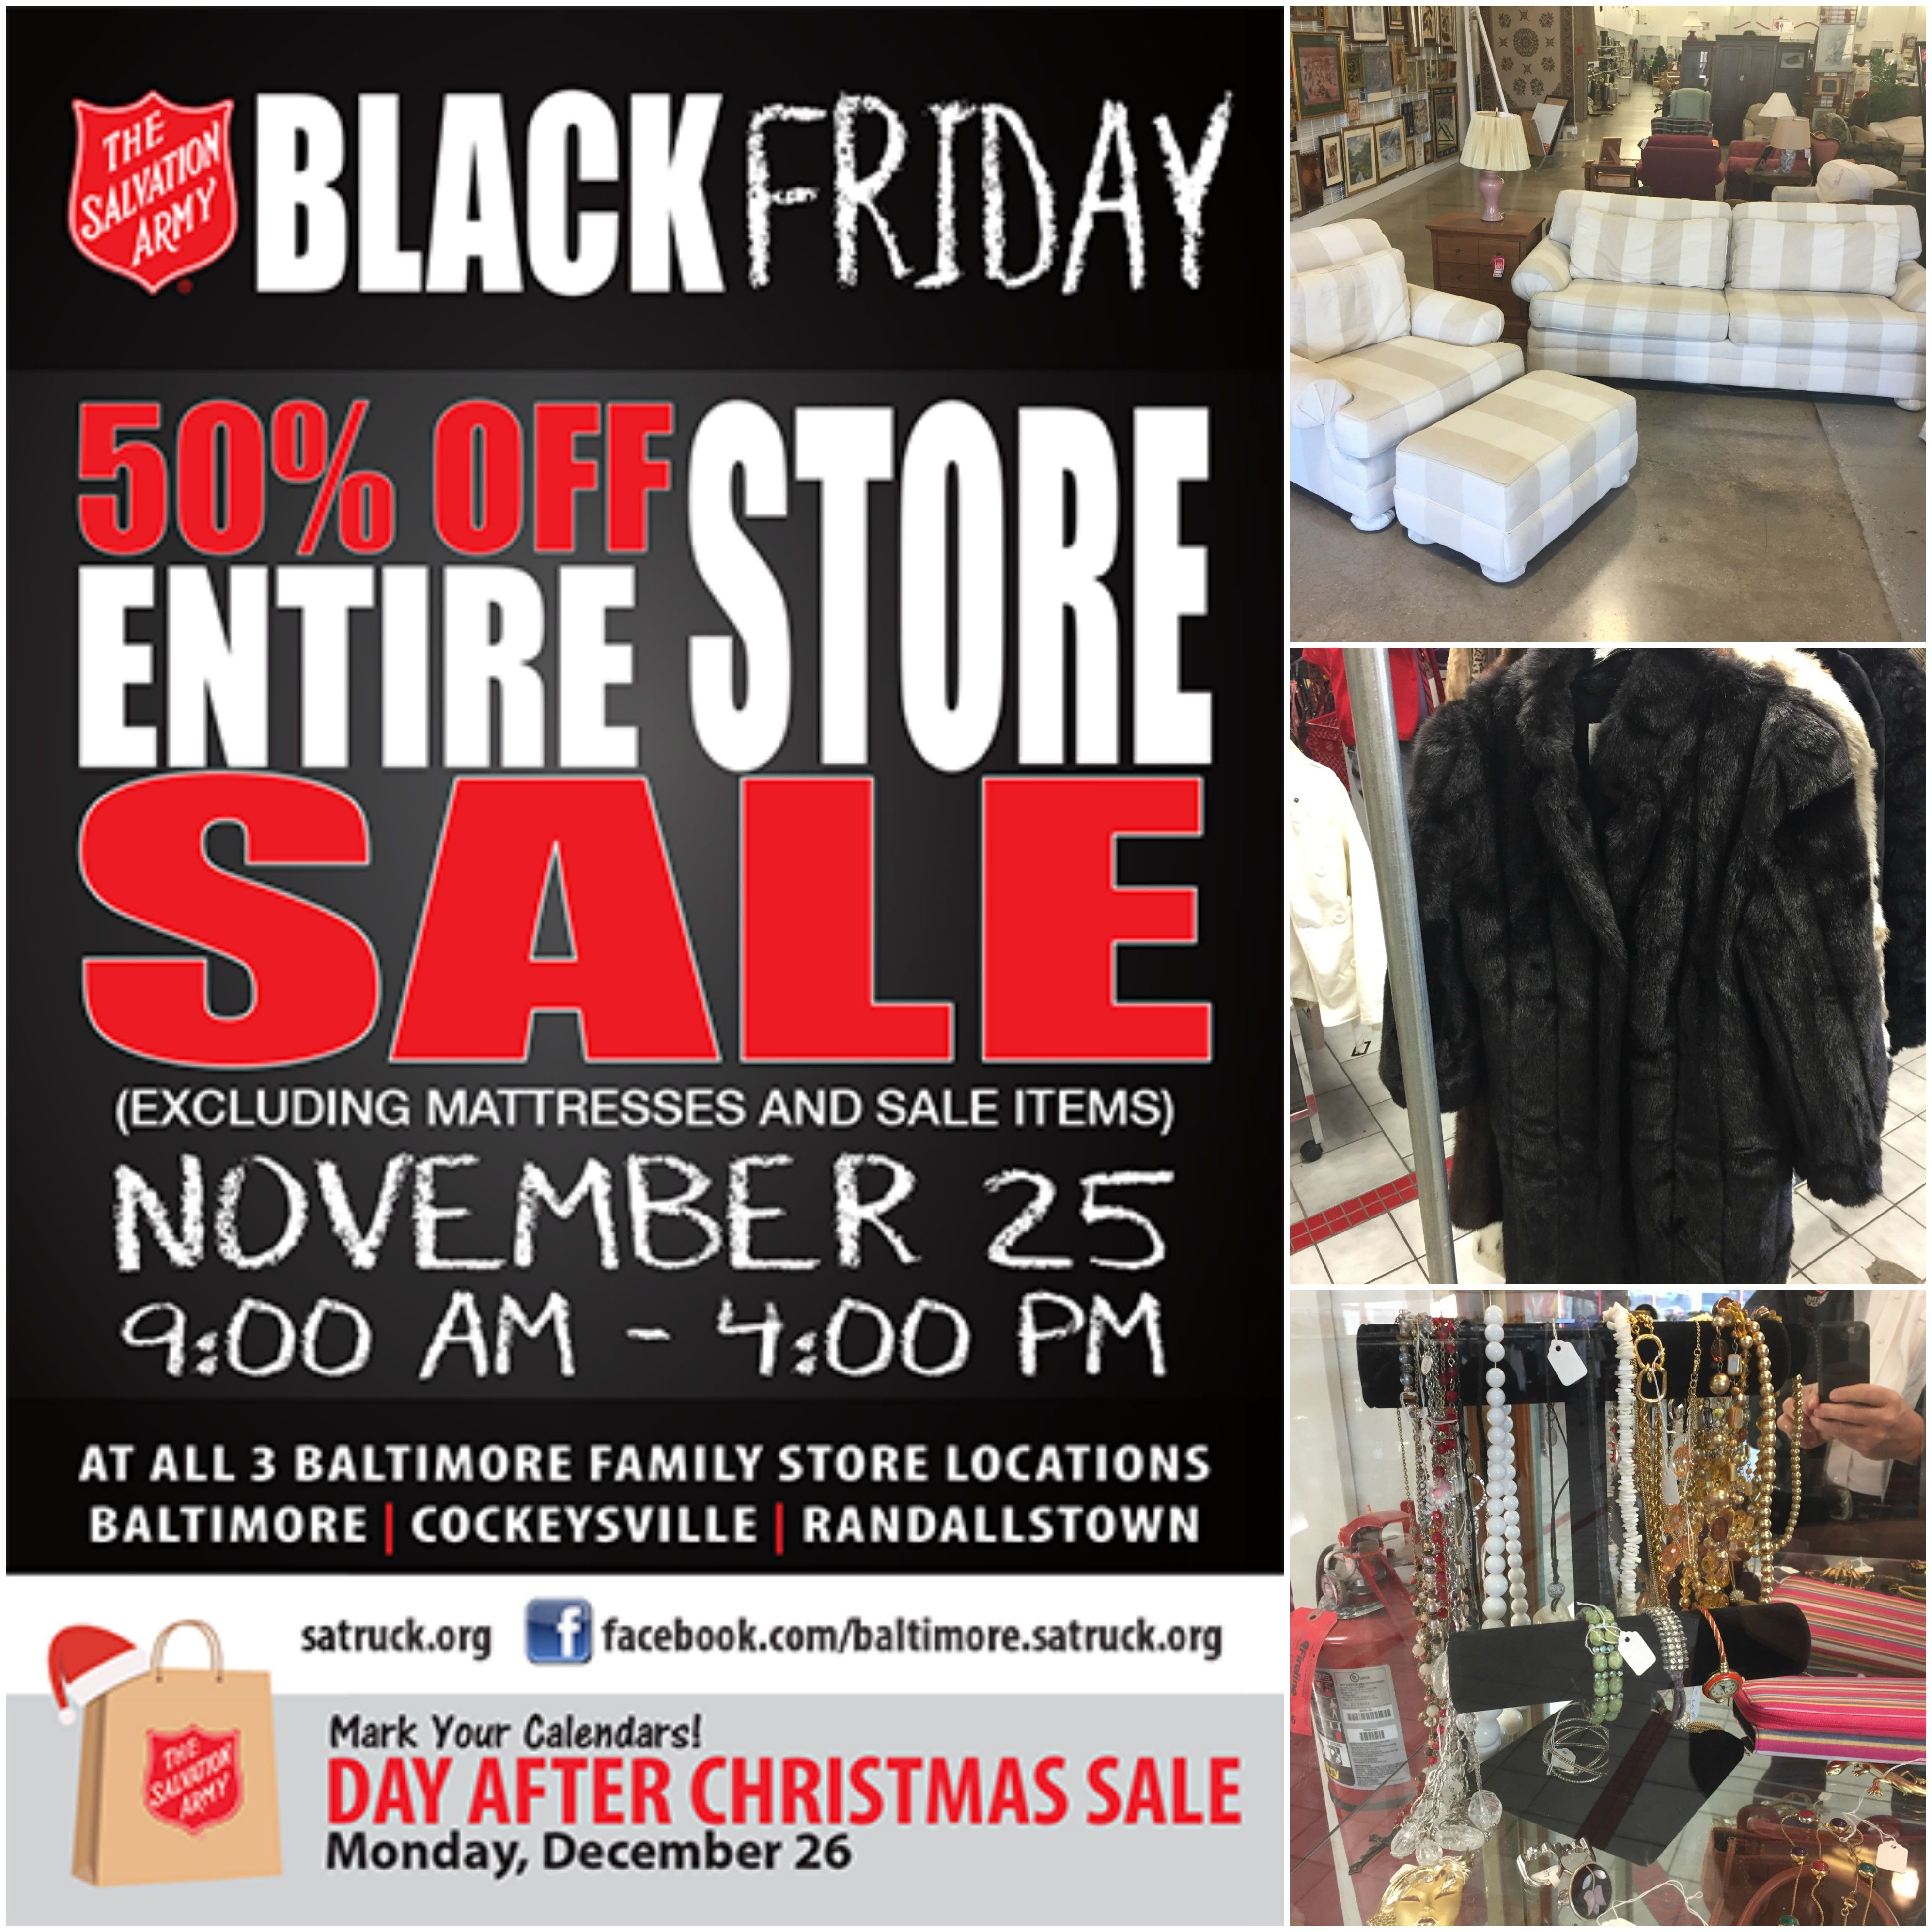 The Salvation Army Blackfriday Sale Is Going On Now Until 4 P M